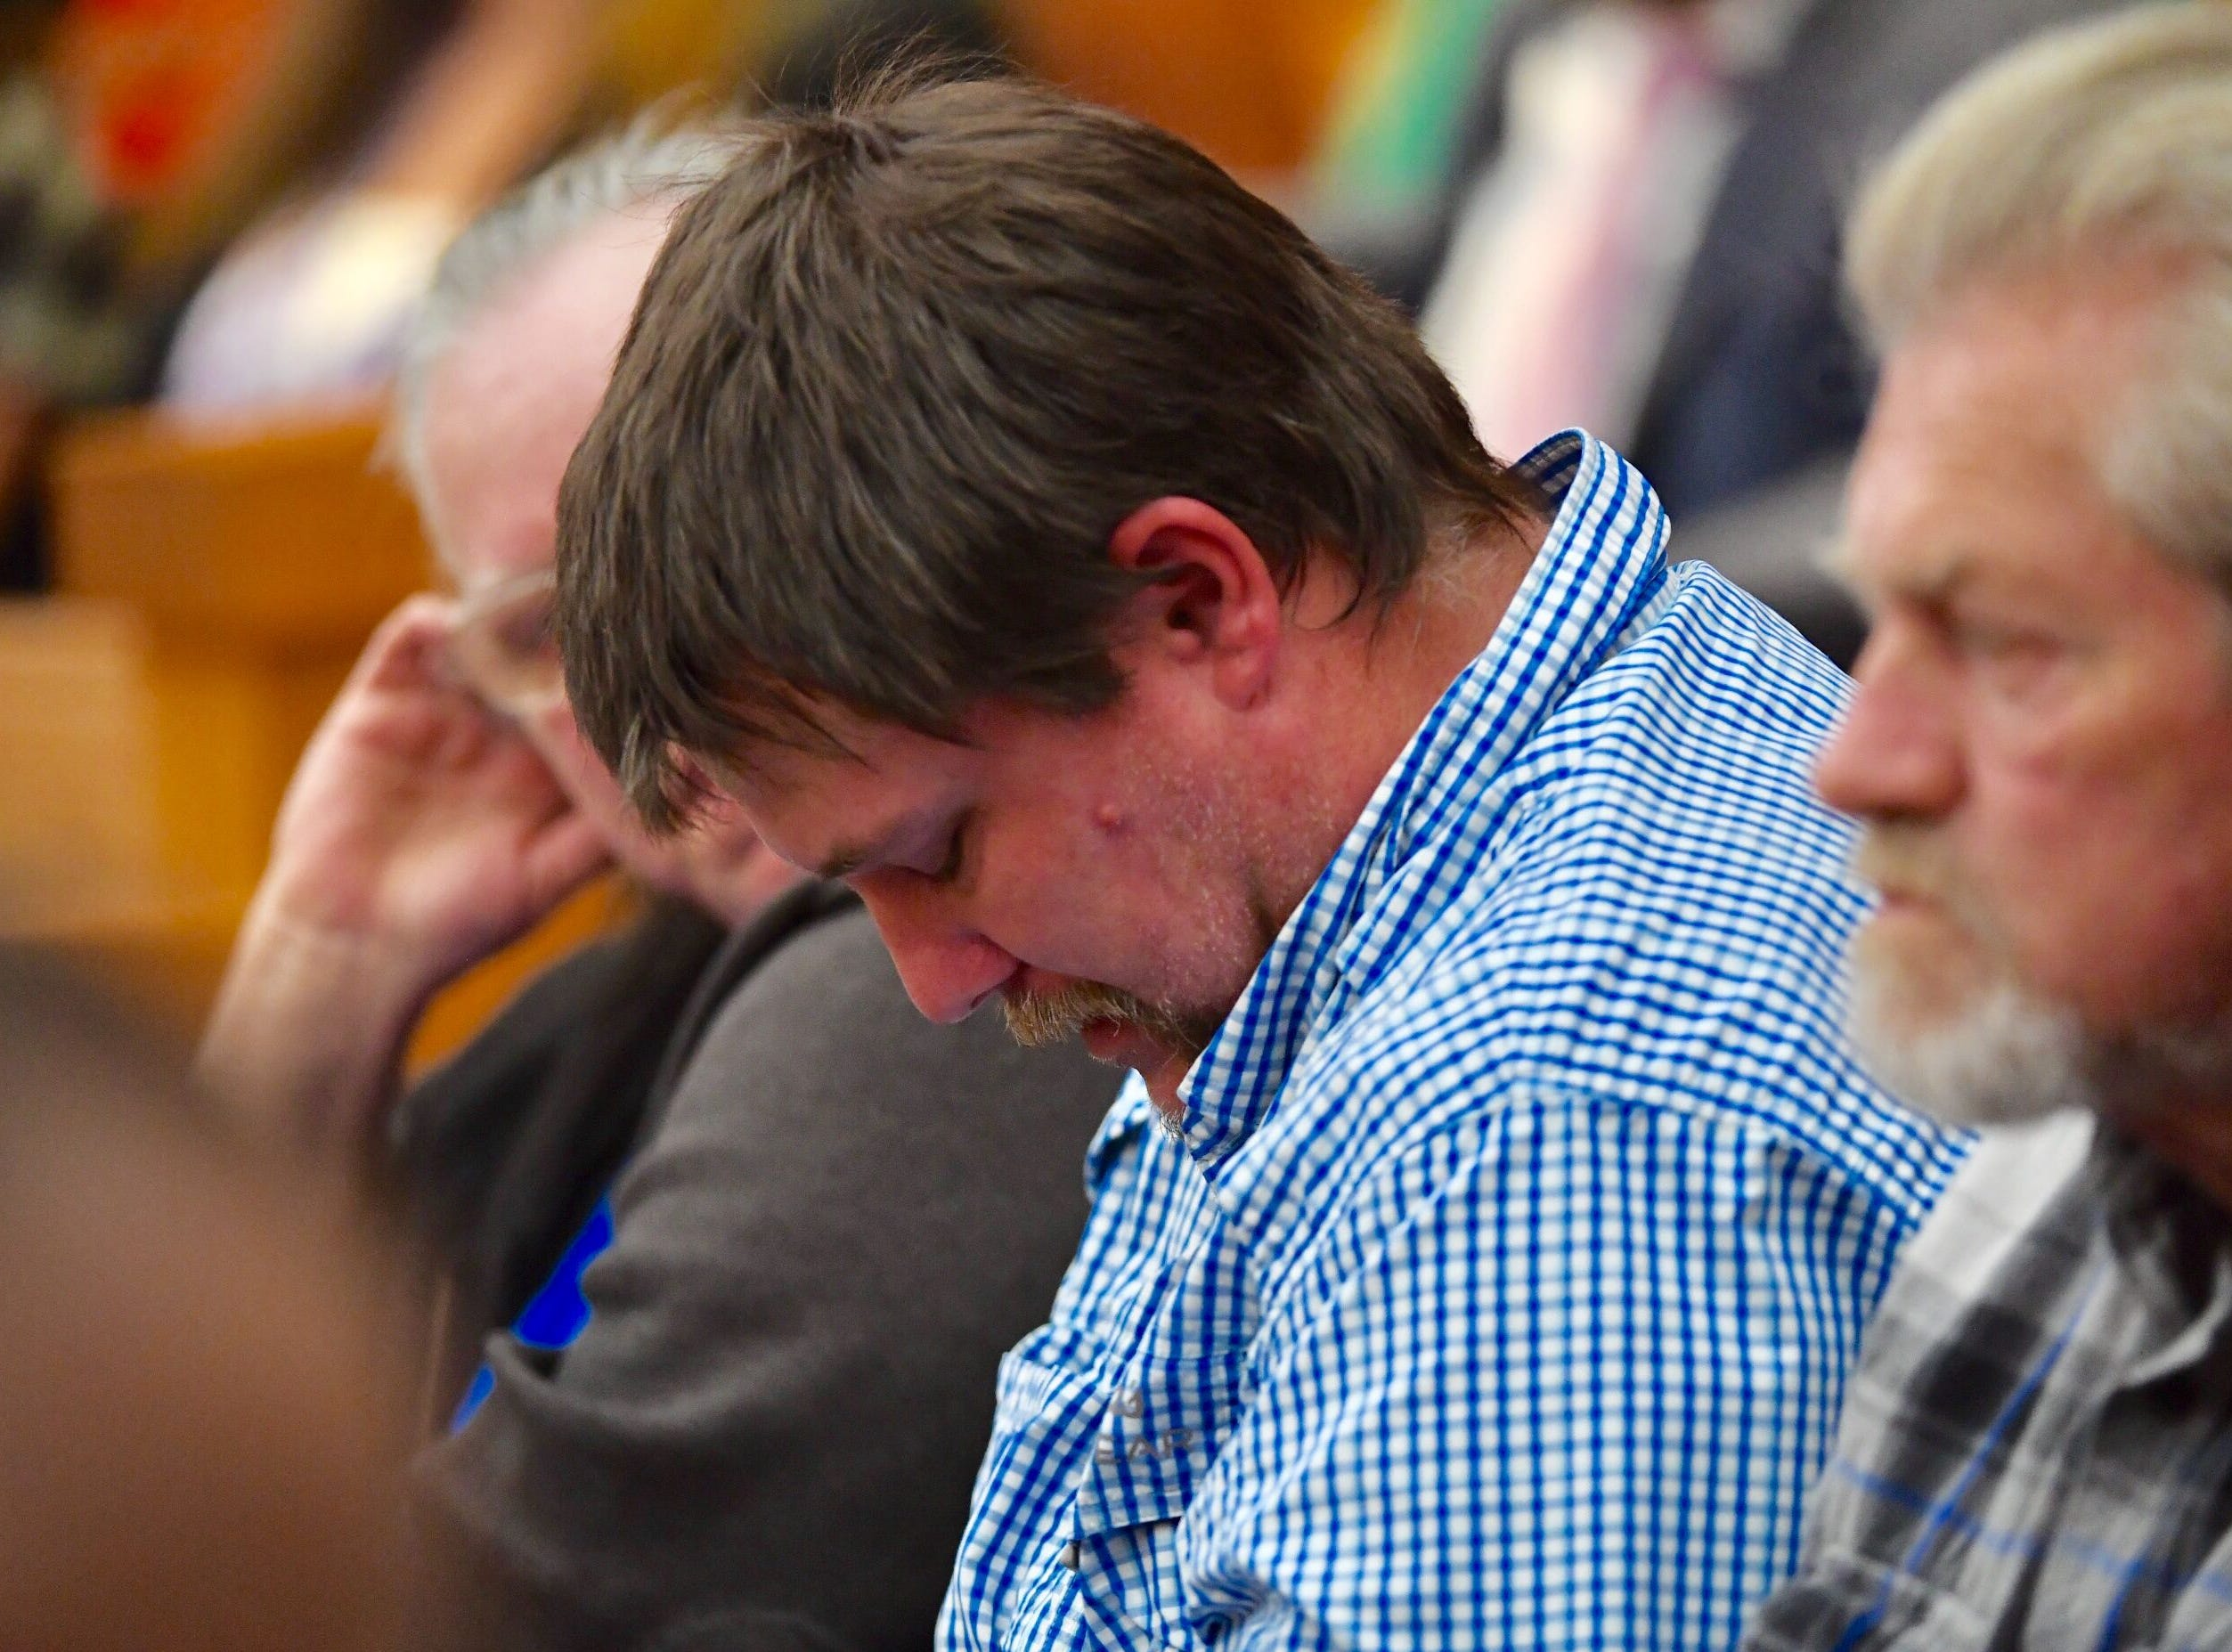 Rodger Hall, the father of Jacob Hall who was killed in the Townville Elementary School shooting, is seen hanging is head during Jesse Osborne's hearing on Wednesday, Dec. 12, 2018. Osborne plead guilty to the shooting.